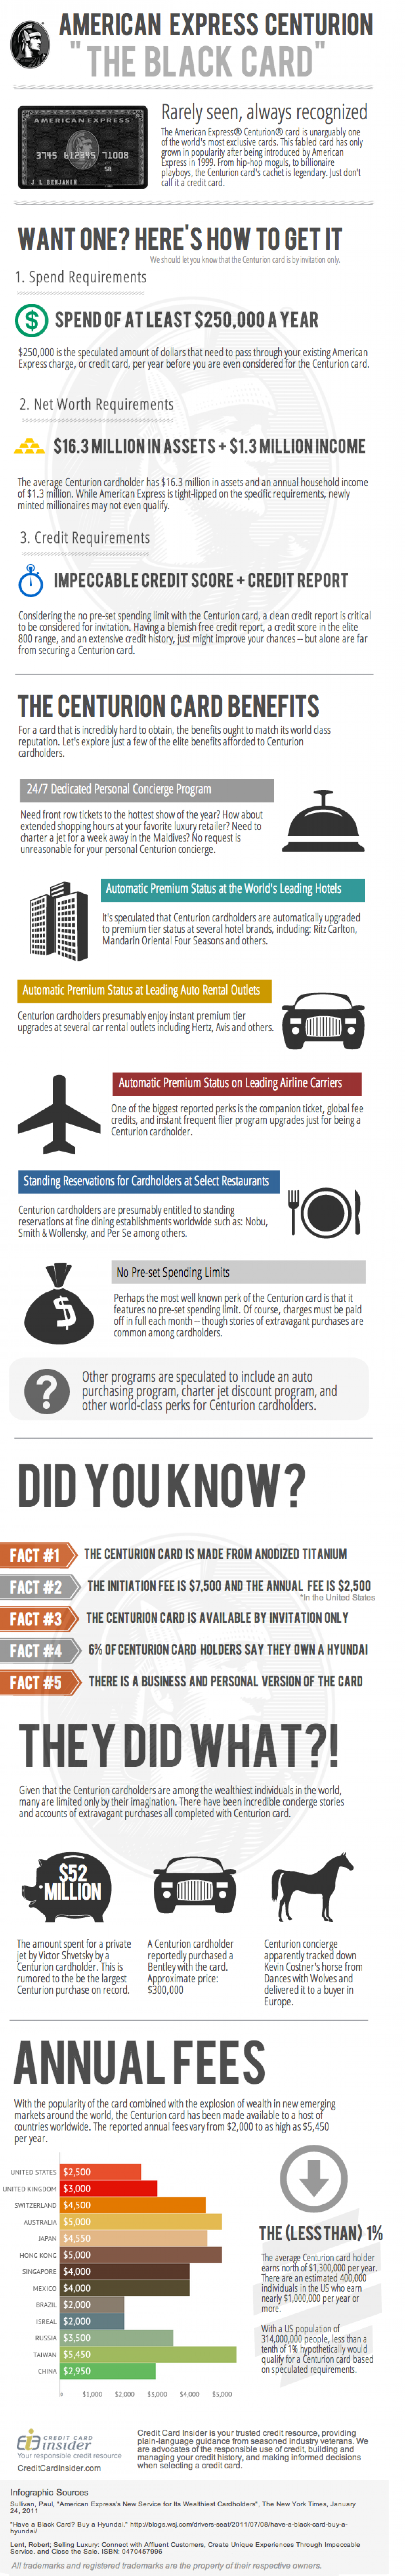 "The American Express Centurion ""Black Card"" Infographic Infographic"